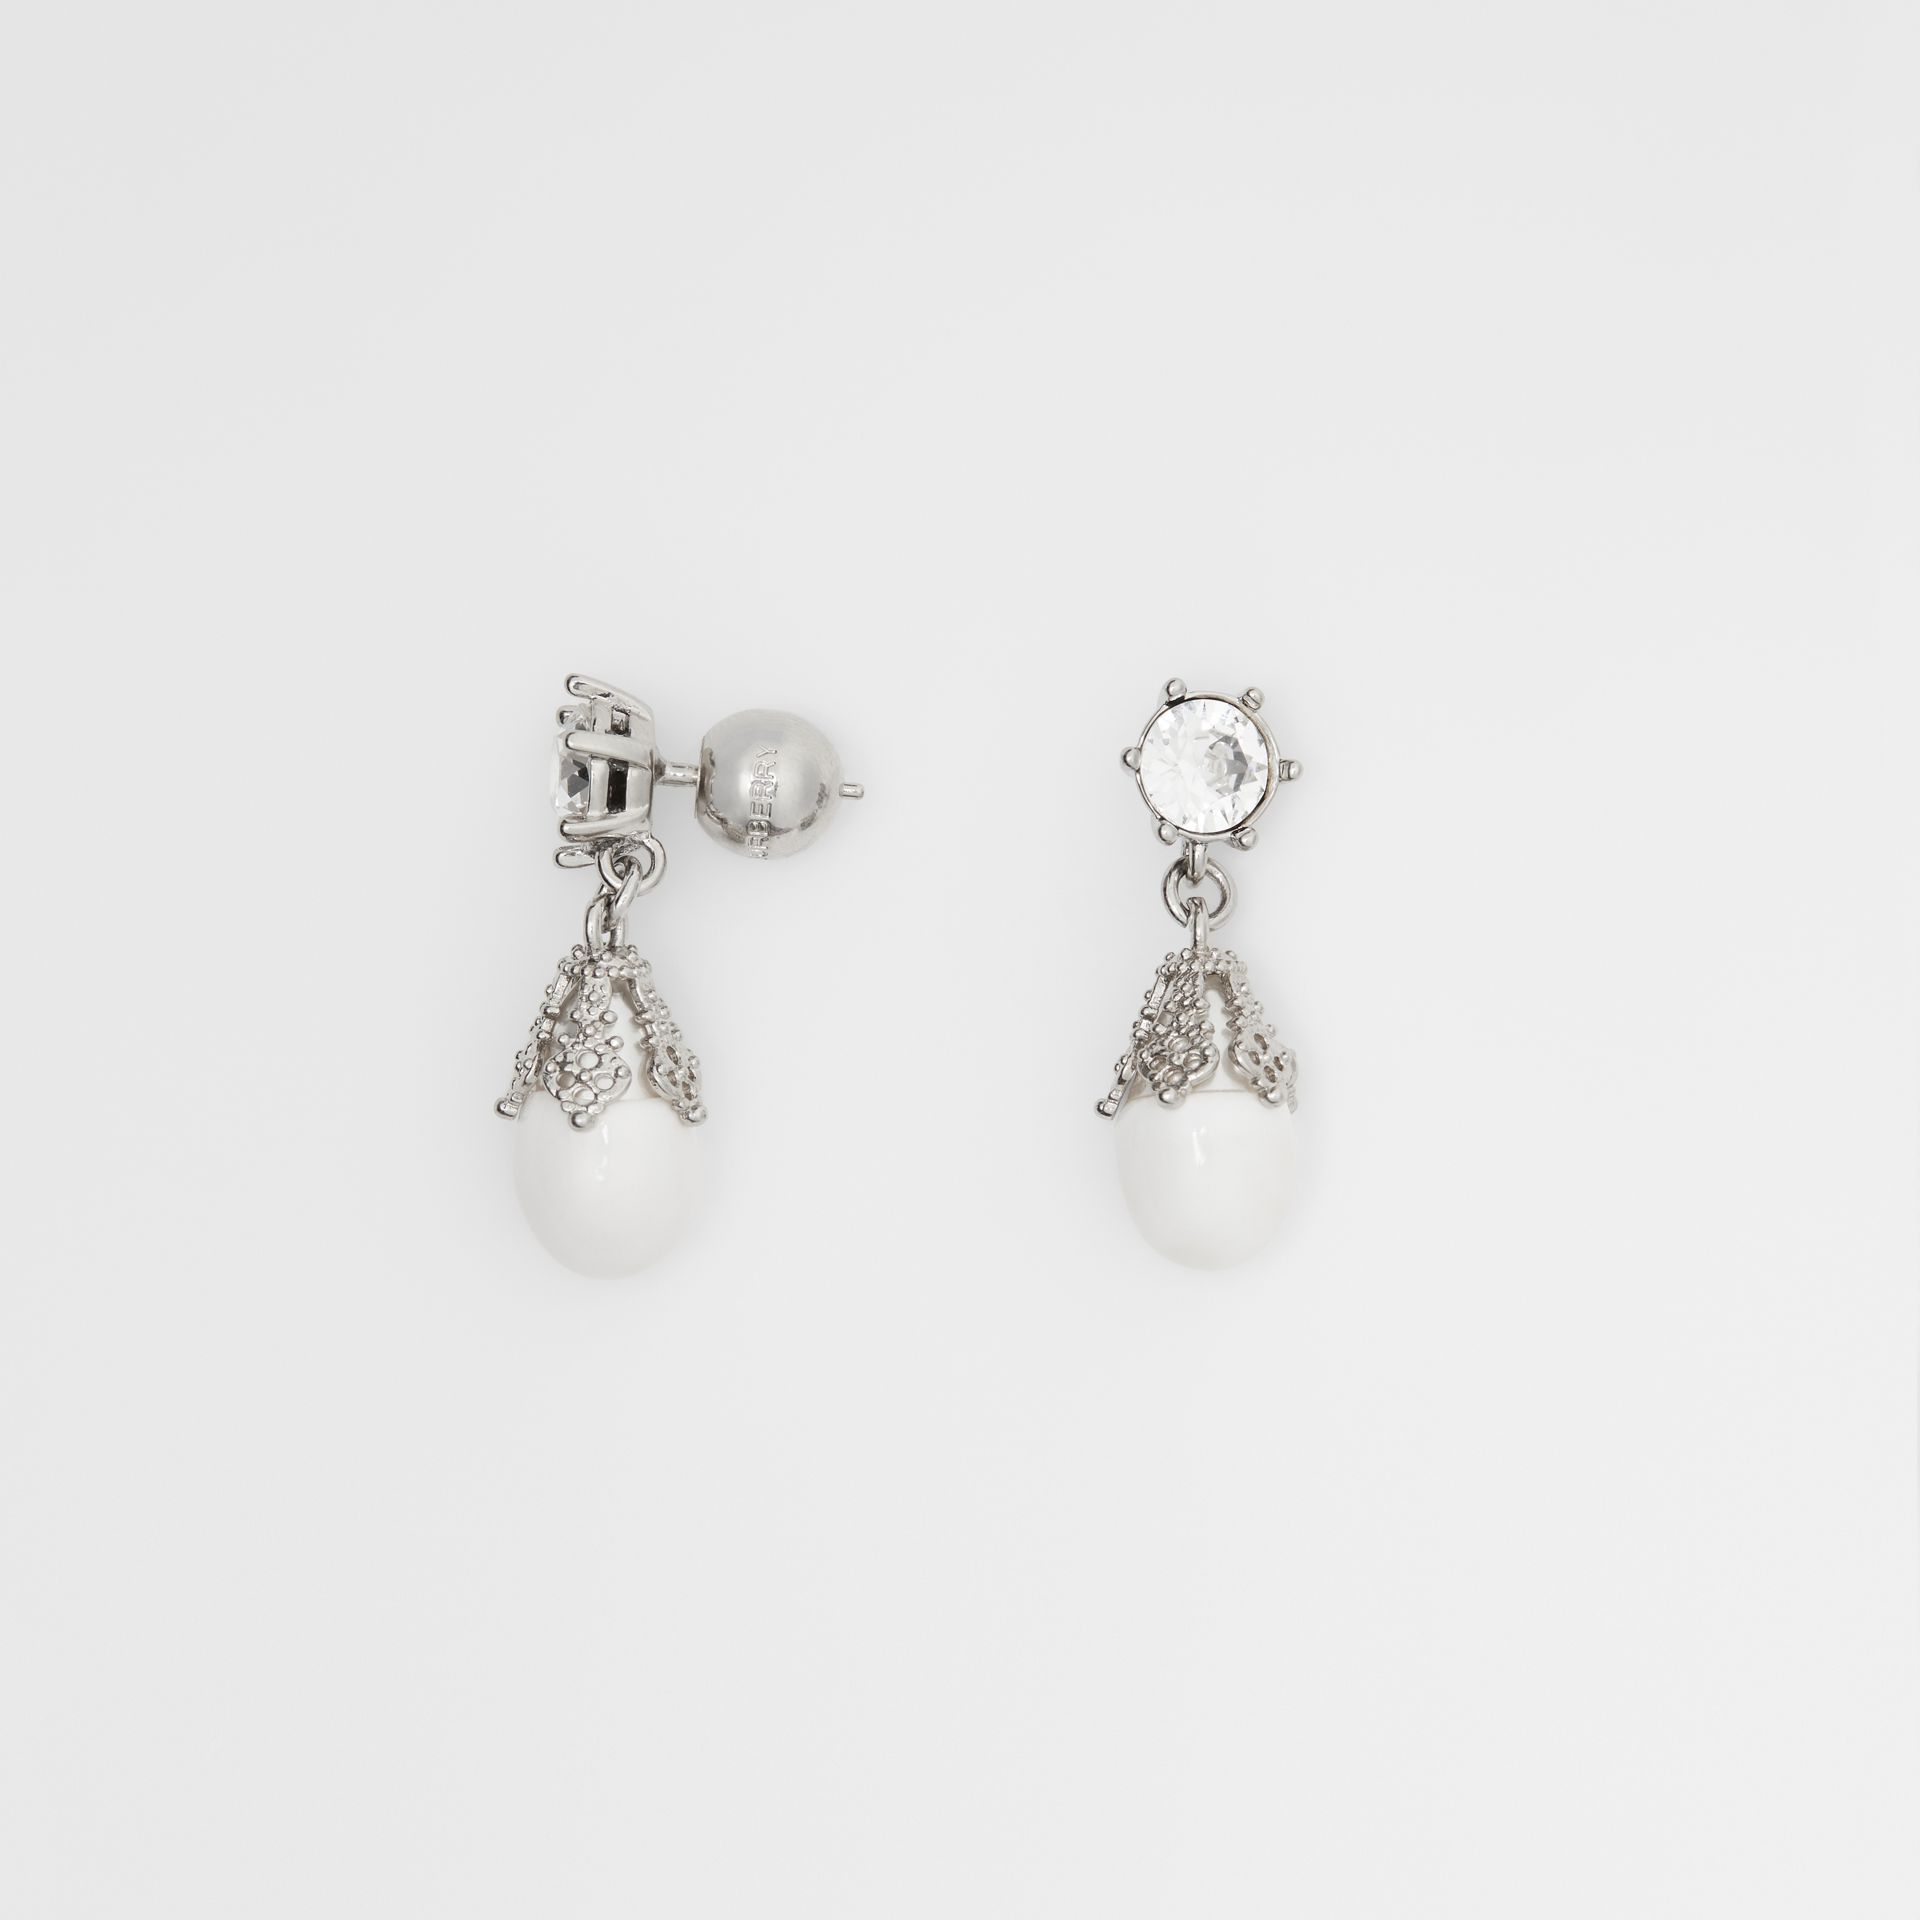 Palladium-plated Faux Pearl Charm Earrings in White/palladium - Women | Burberry - gallery image 3